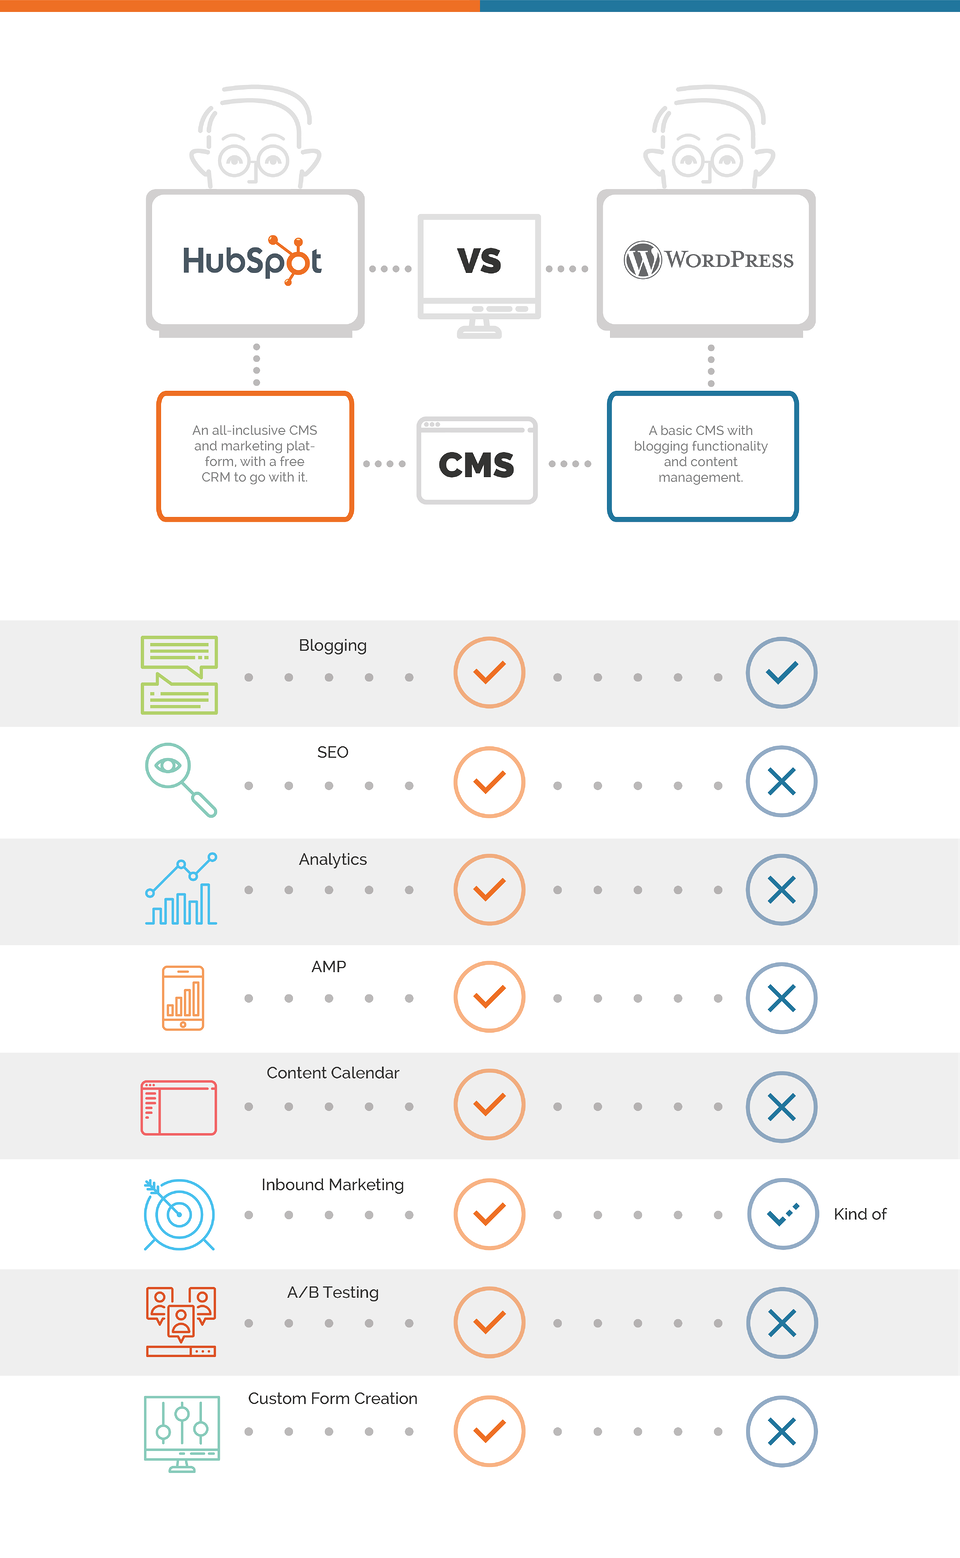 hubspot vs wordpress